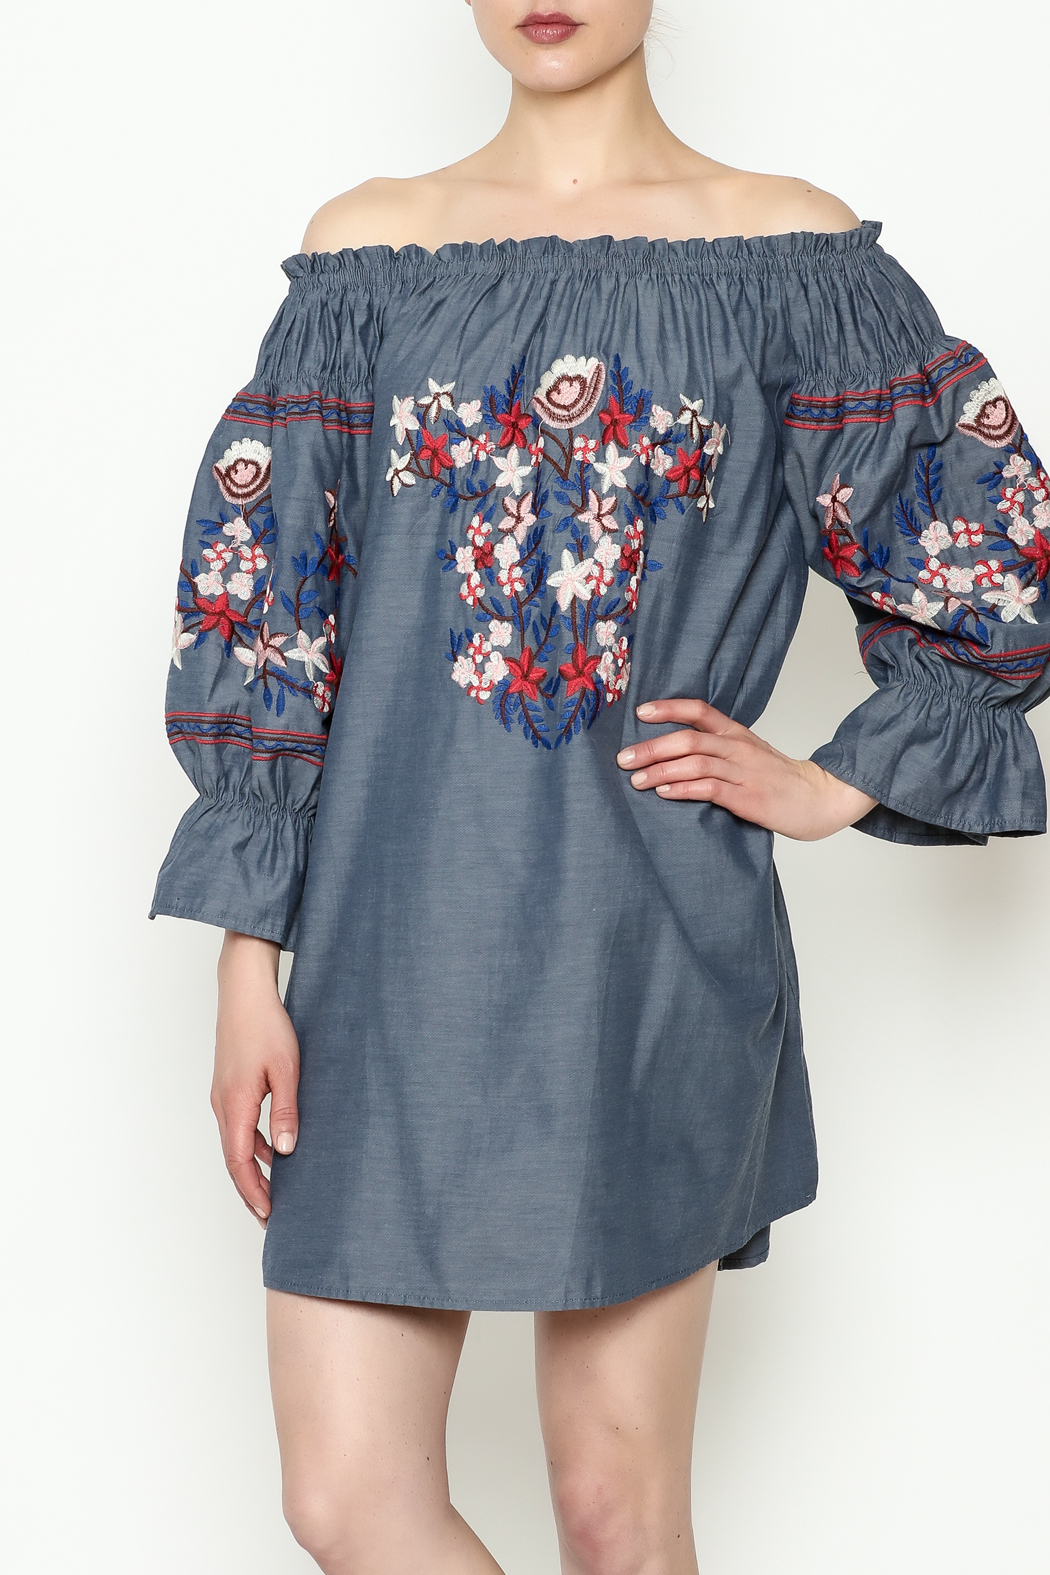 THINK CLOSET Embroidery Dress - Main Image